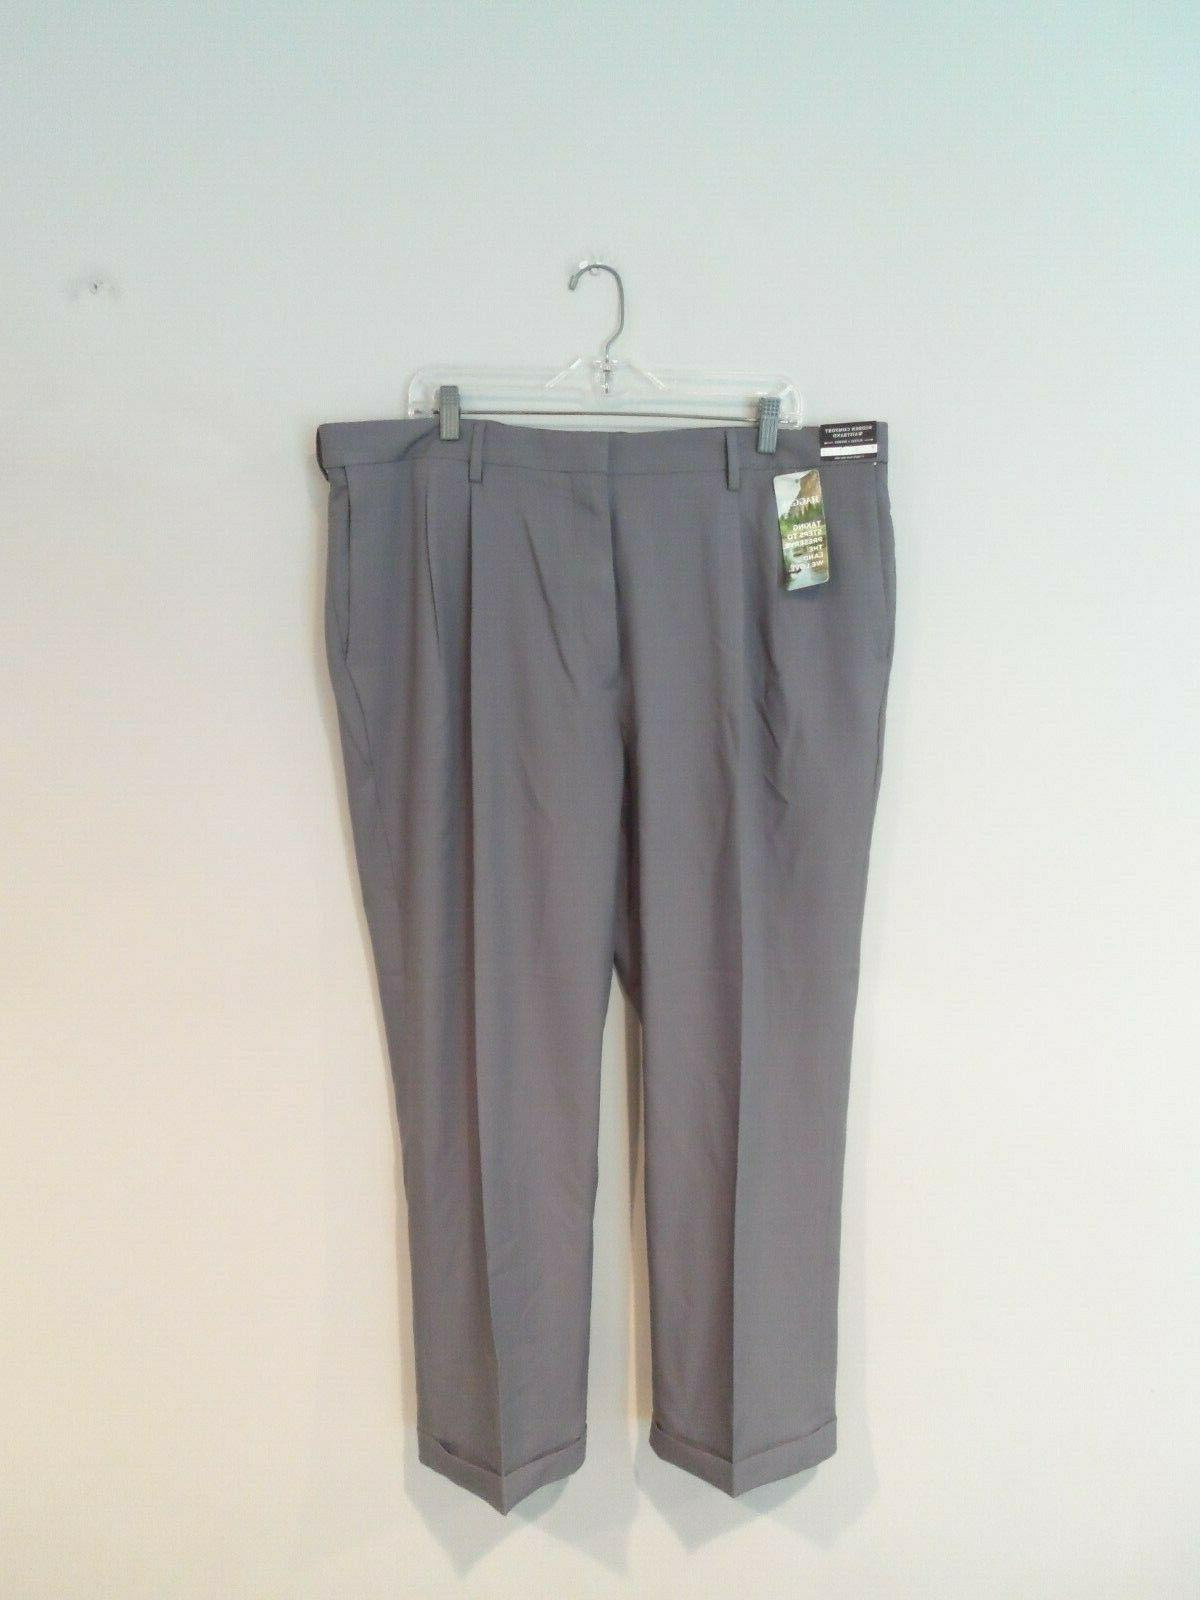 NEW Mens Comfort Pants Size 42x29 Stretch Fit